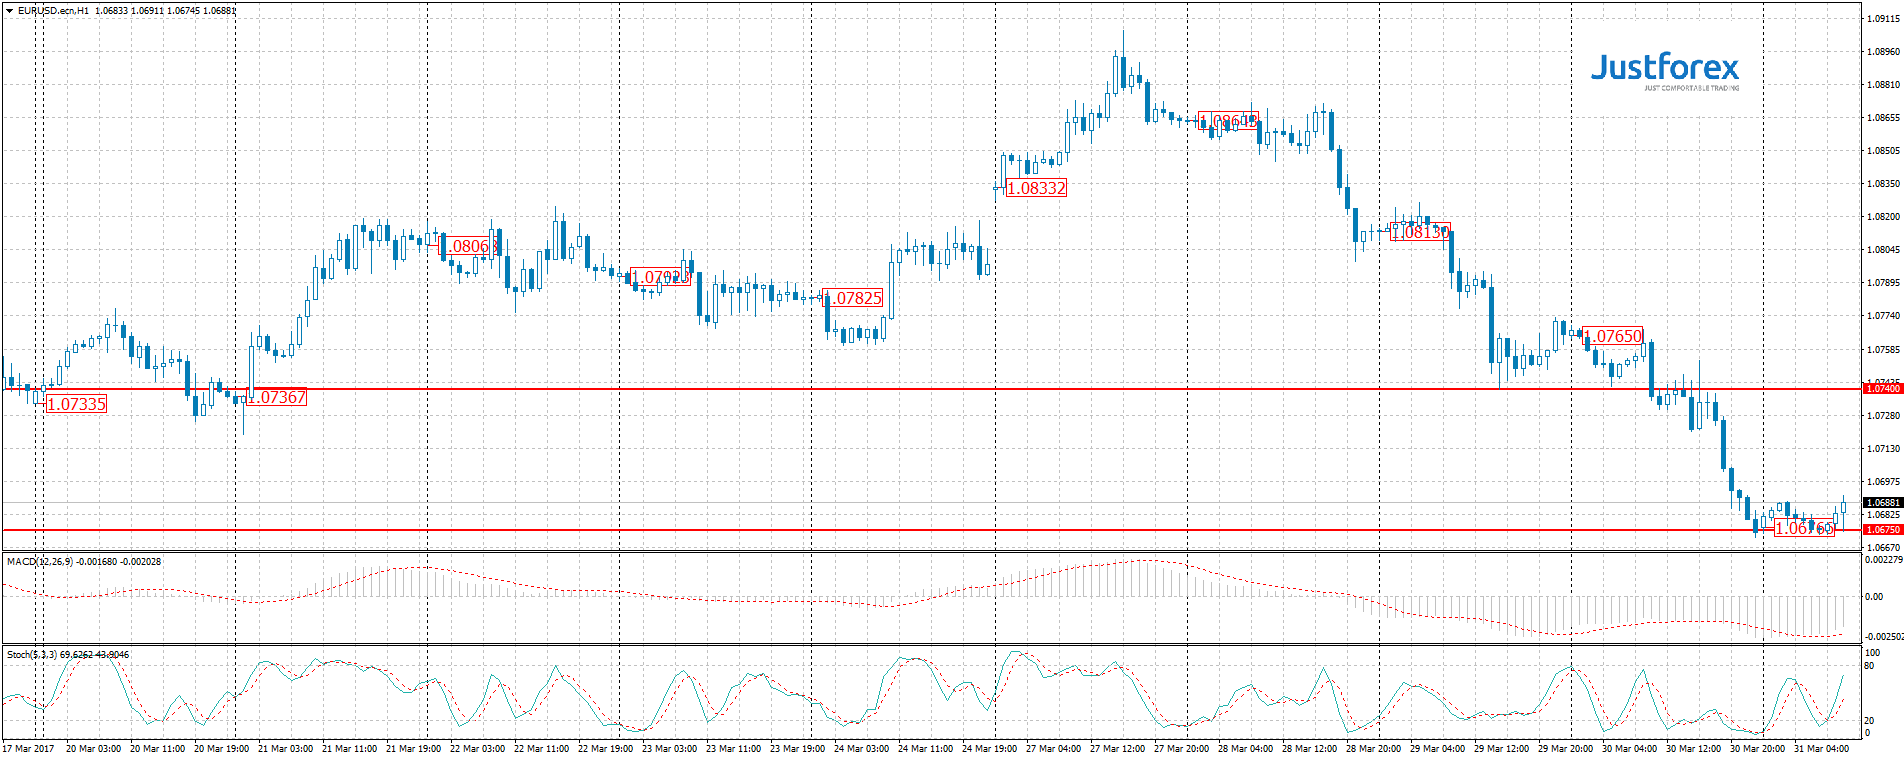 Eur/usd forex forecast today